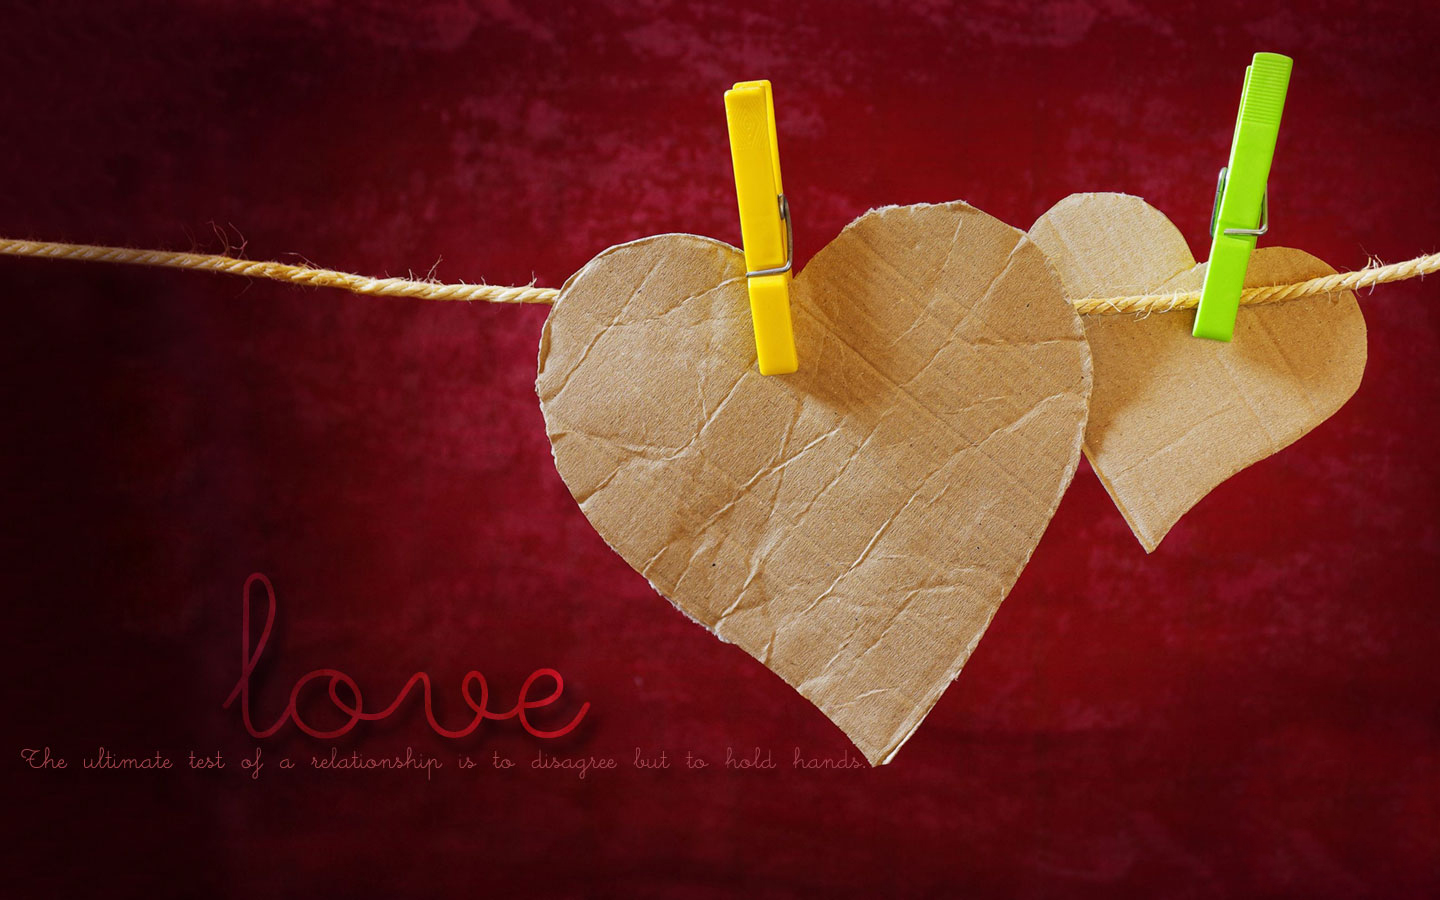 Love HD Wallpapers 1080p - WallpaperSafari